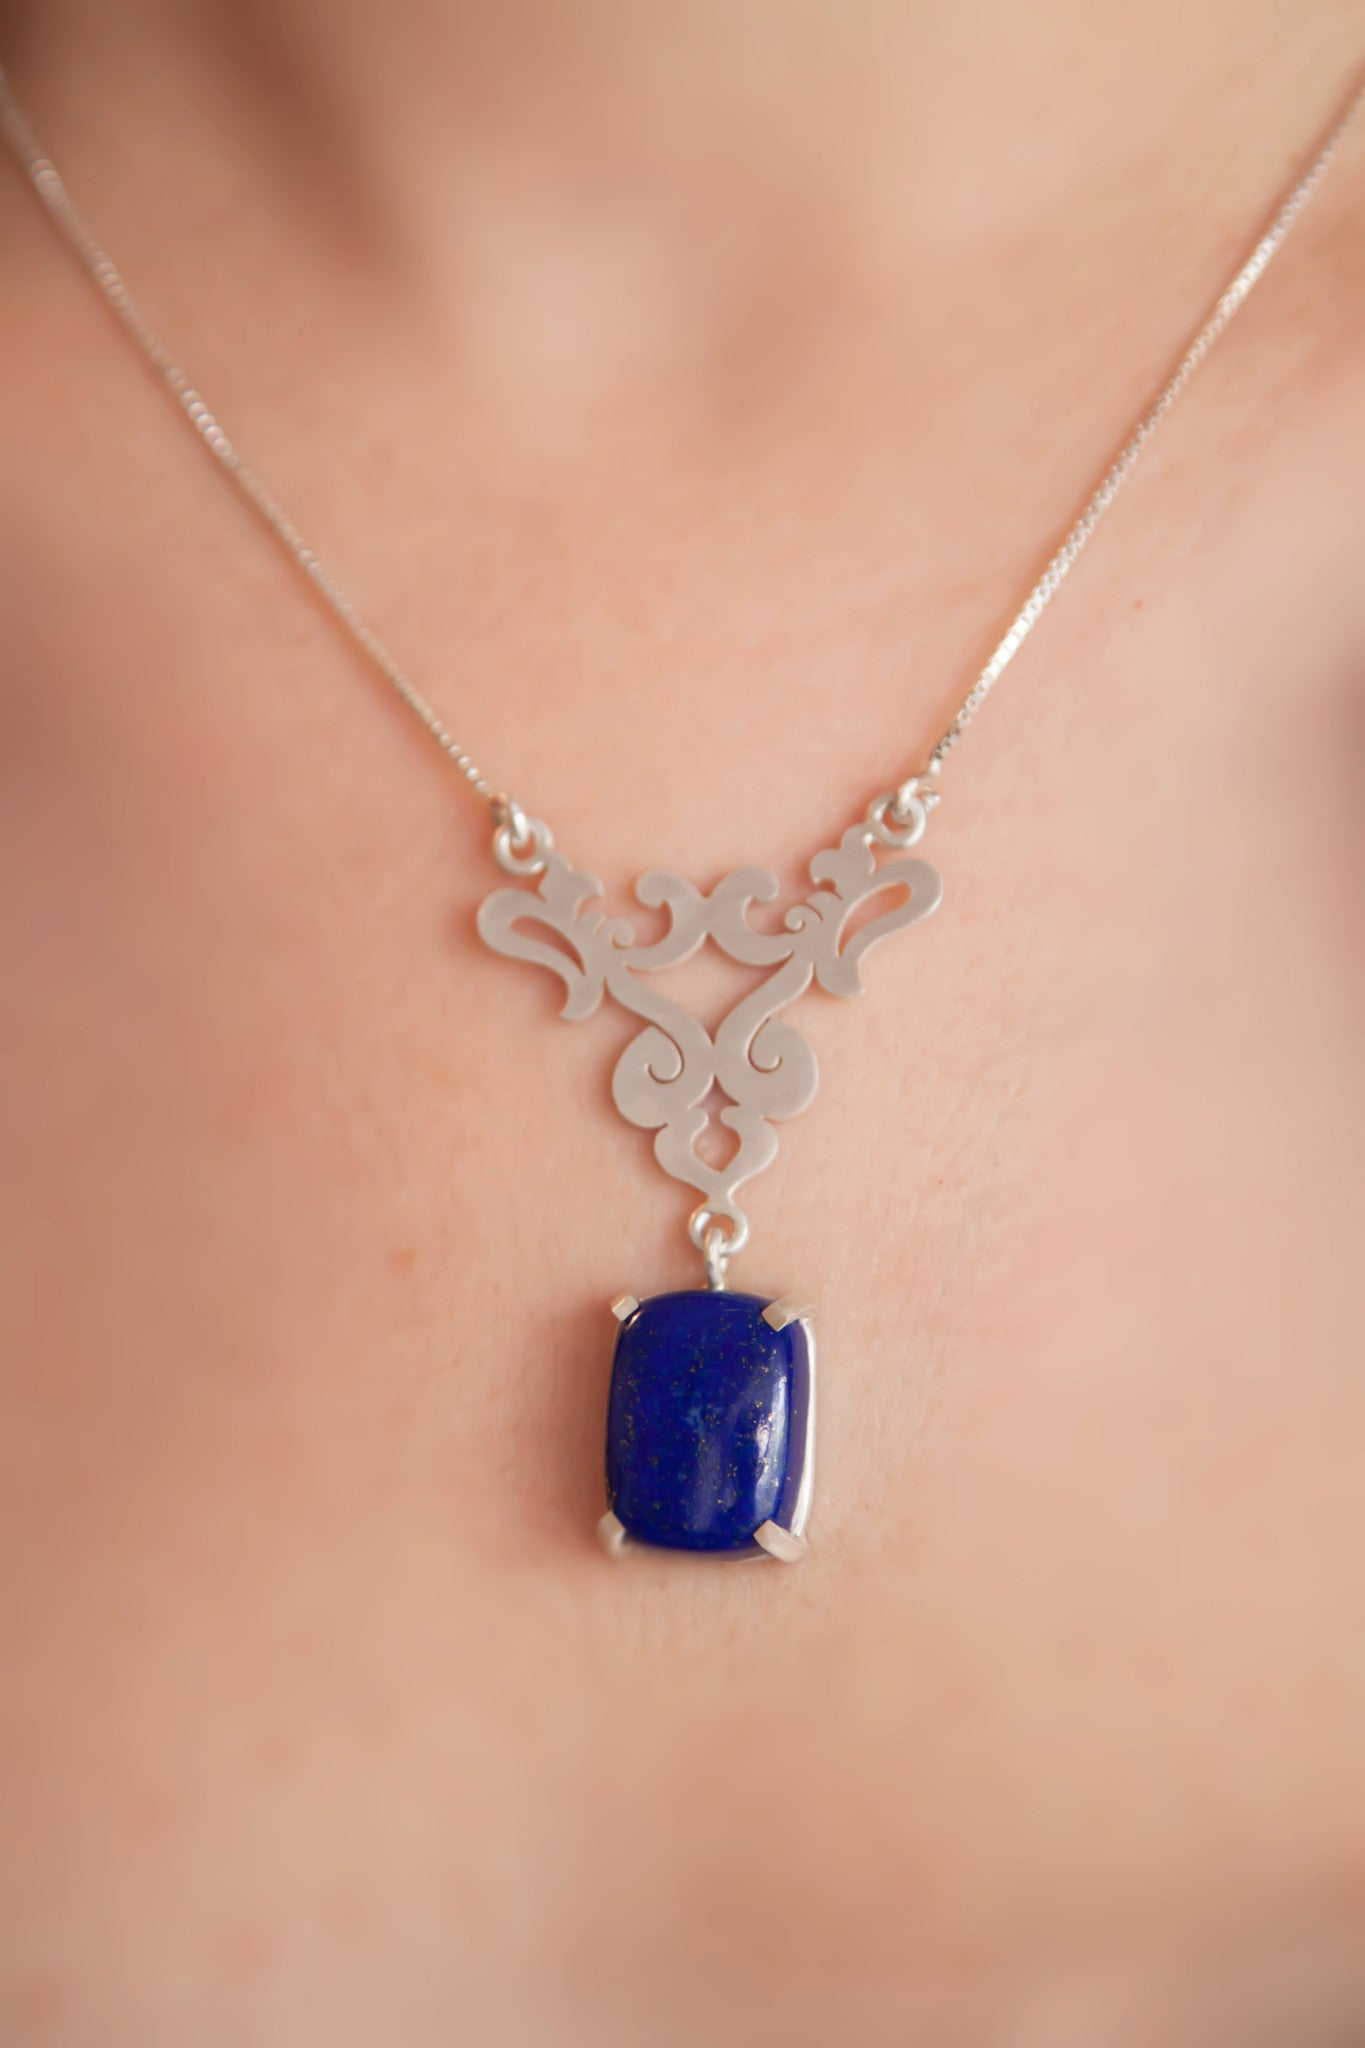 Eslimi Silver Necklace with Lazuli Pendant